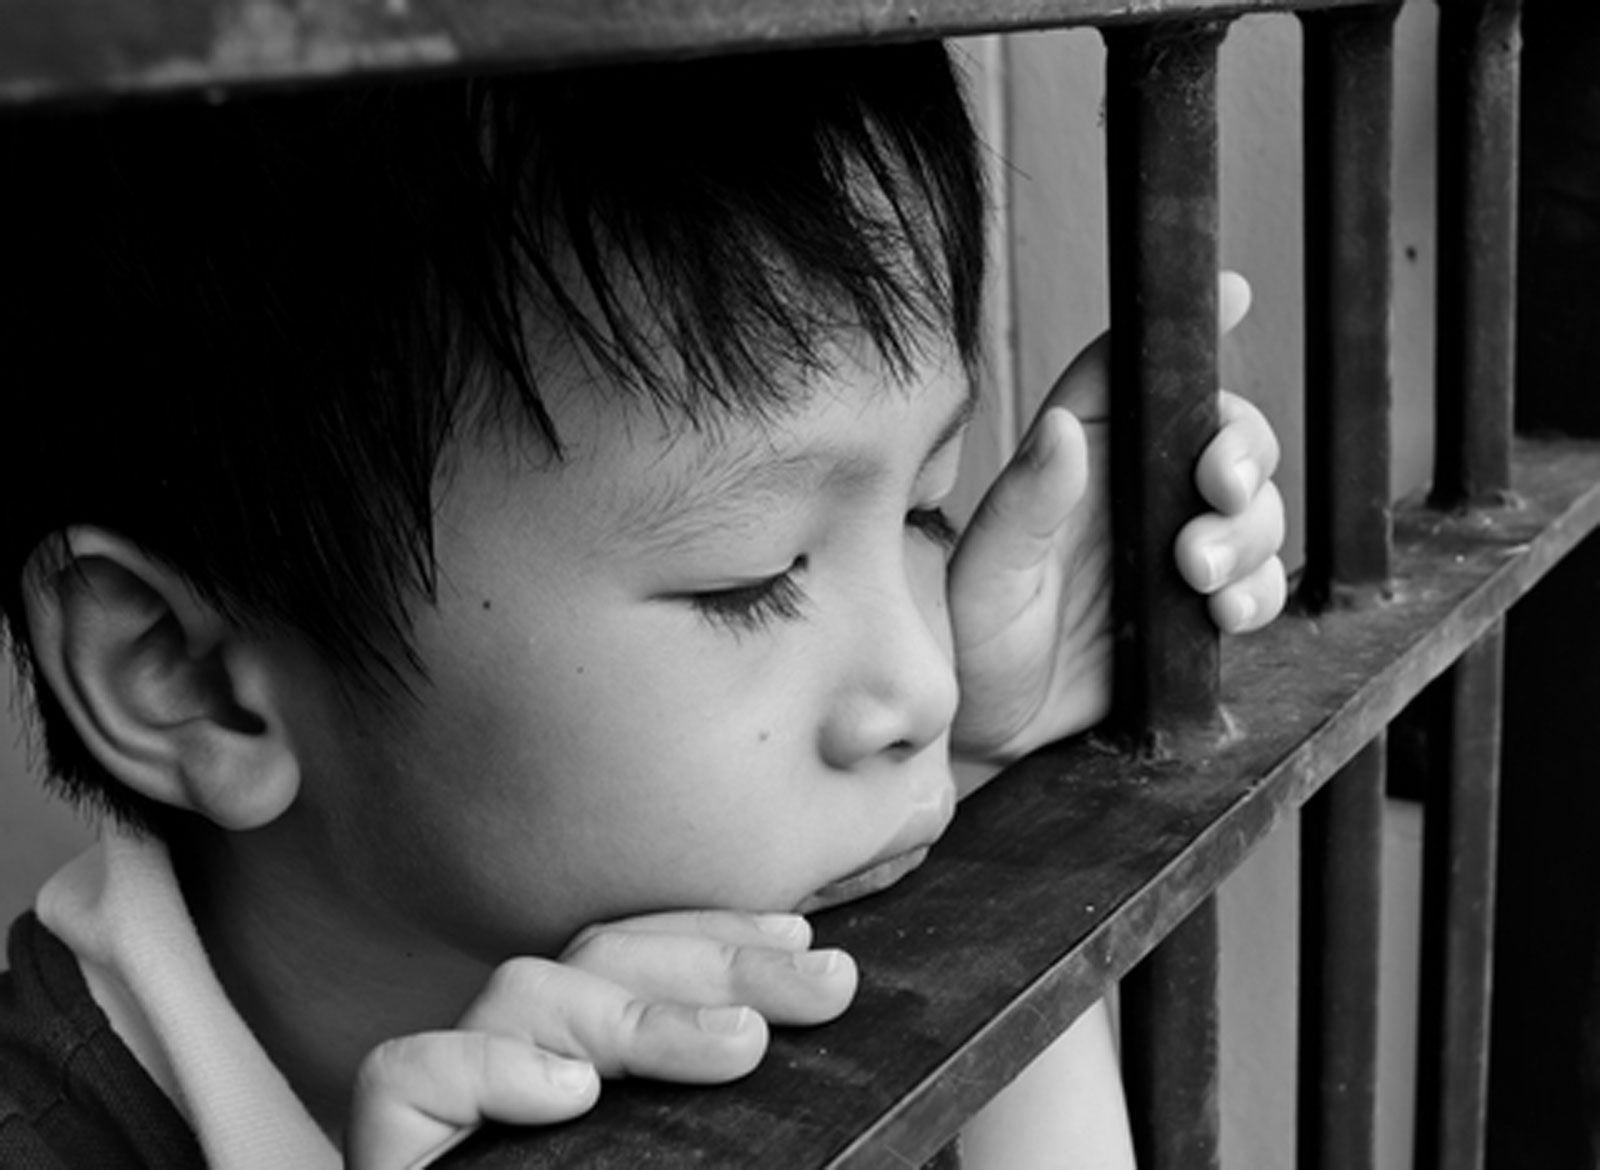 children and violence Child maltreatment is a serious problem that can have lasting harmful effects on victims the goal for child maltreatment prevention is simple—to stop child abuse and neglect from happening in the first place.